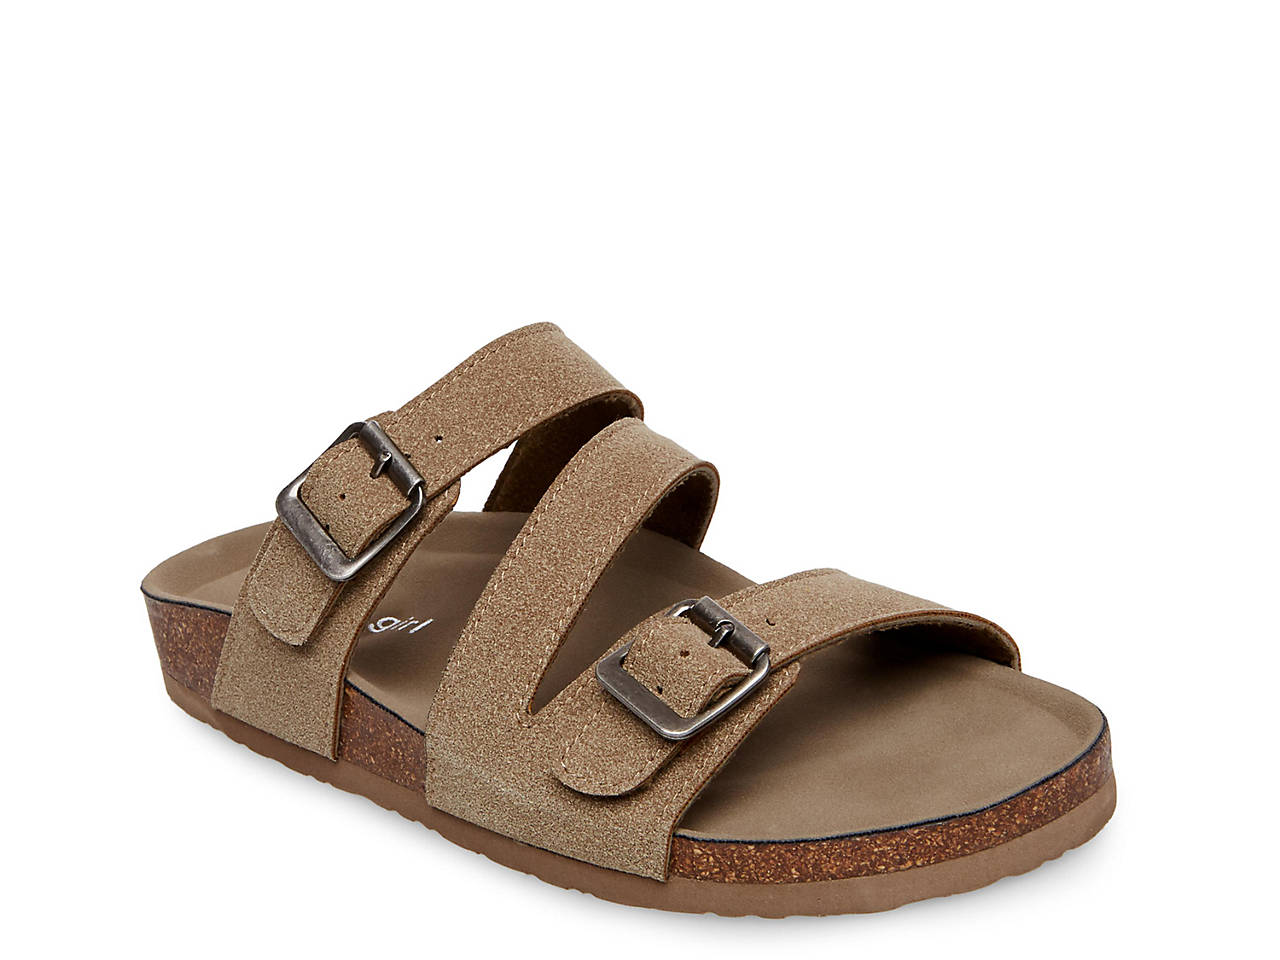 Women's Madden Girl Brinsley Footbed Sandals clearance perfect xgGKSJl